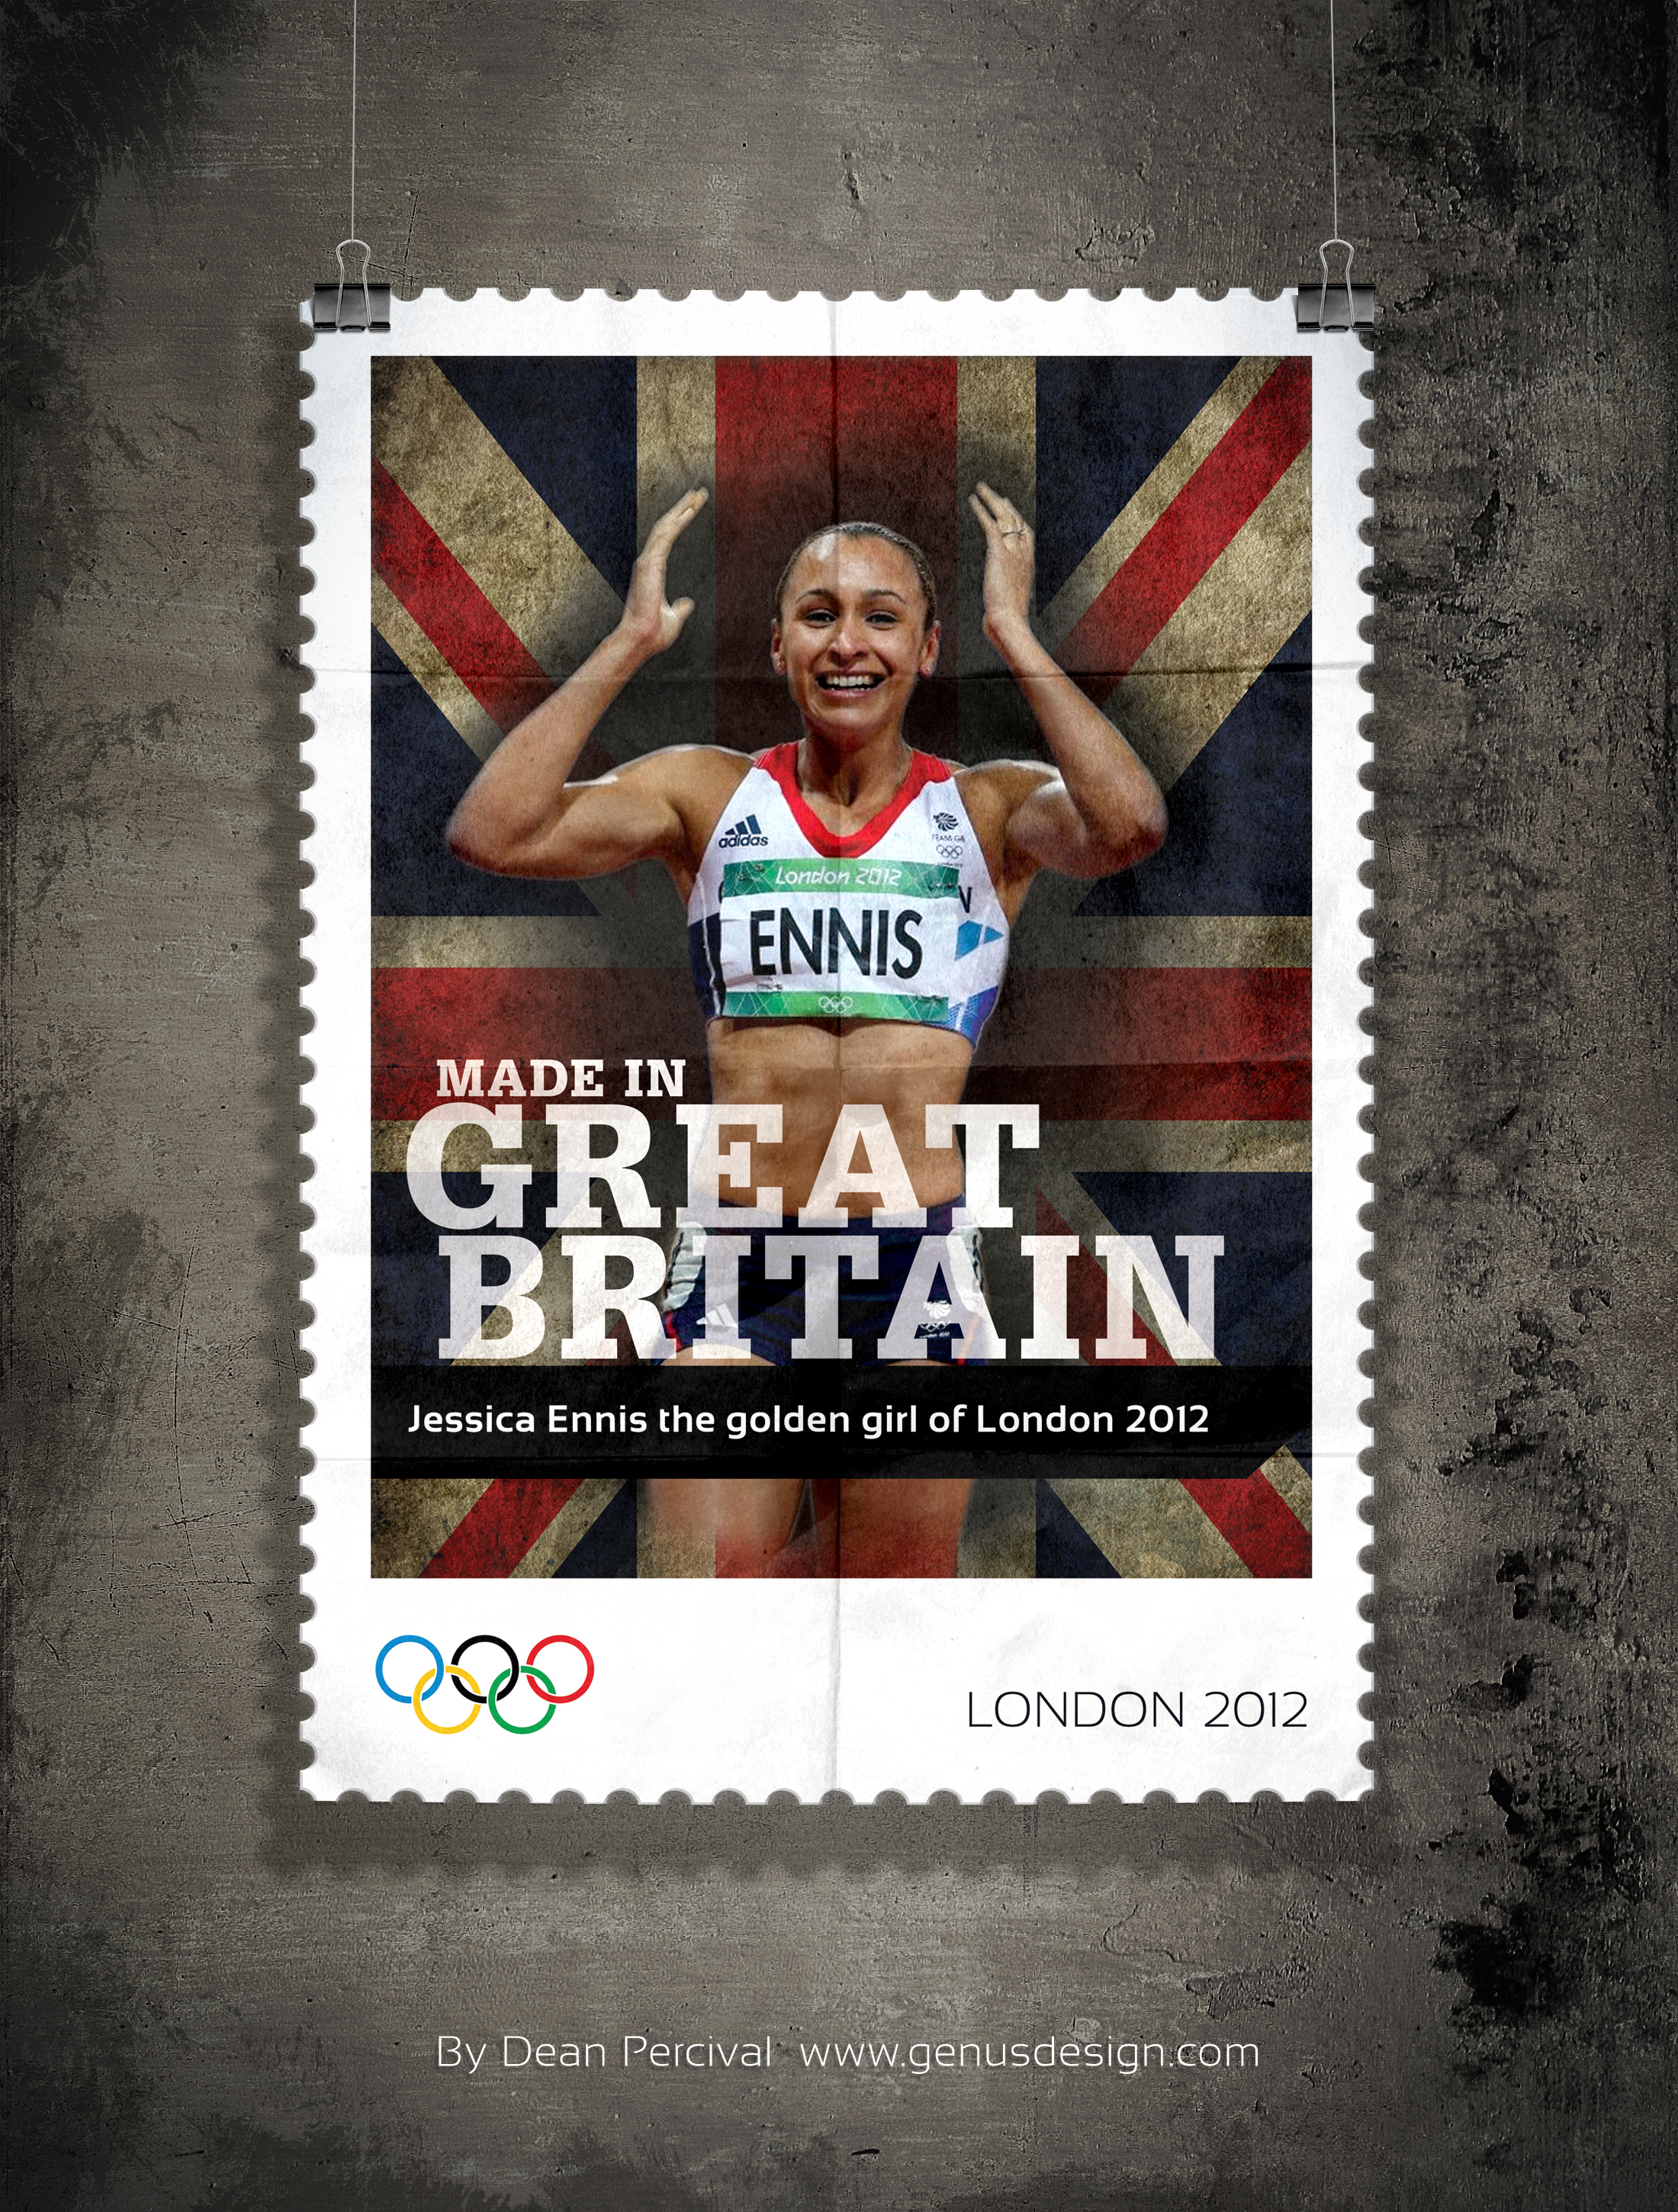 Jessica Ennis Golden Girl of London 2012